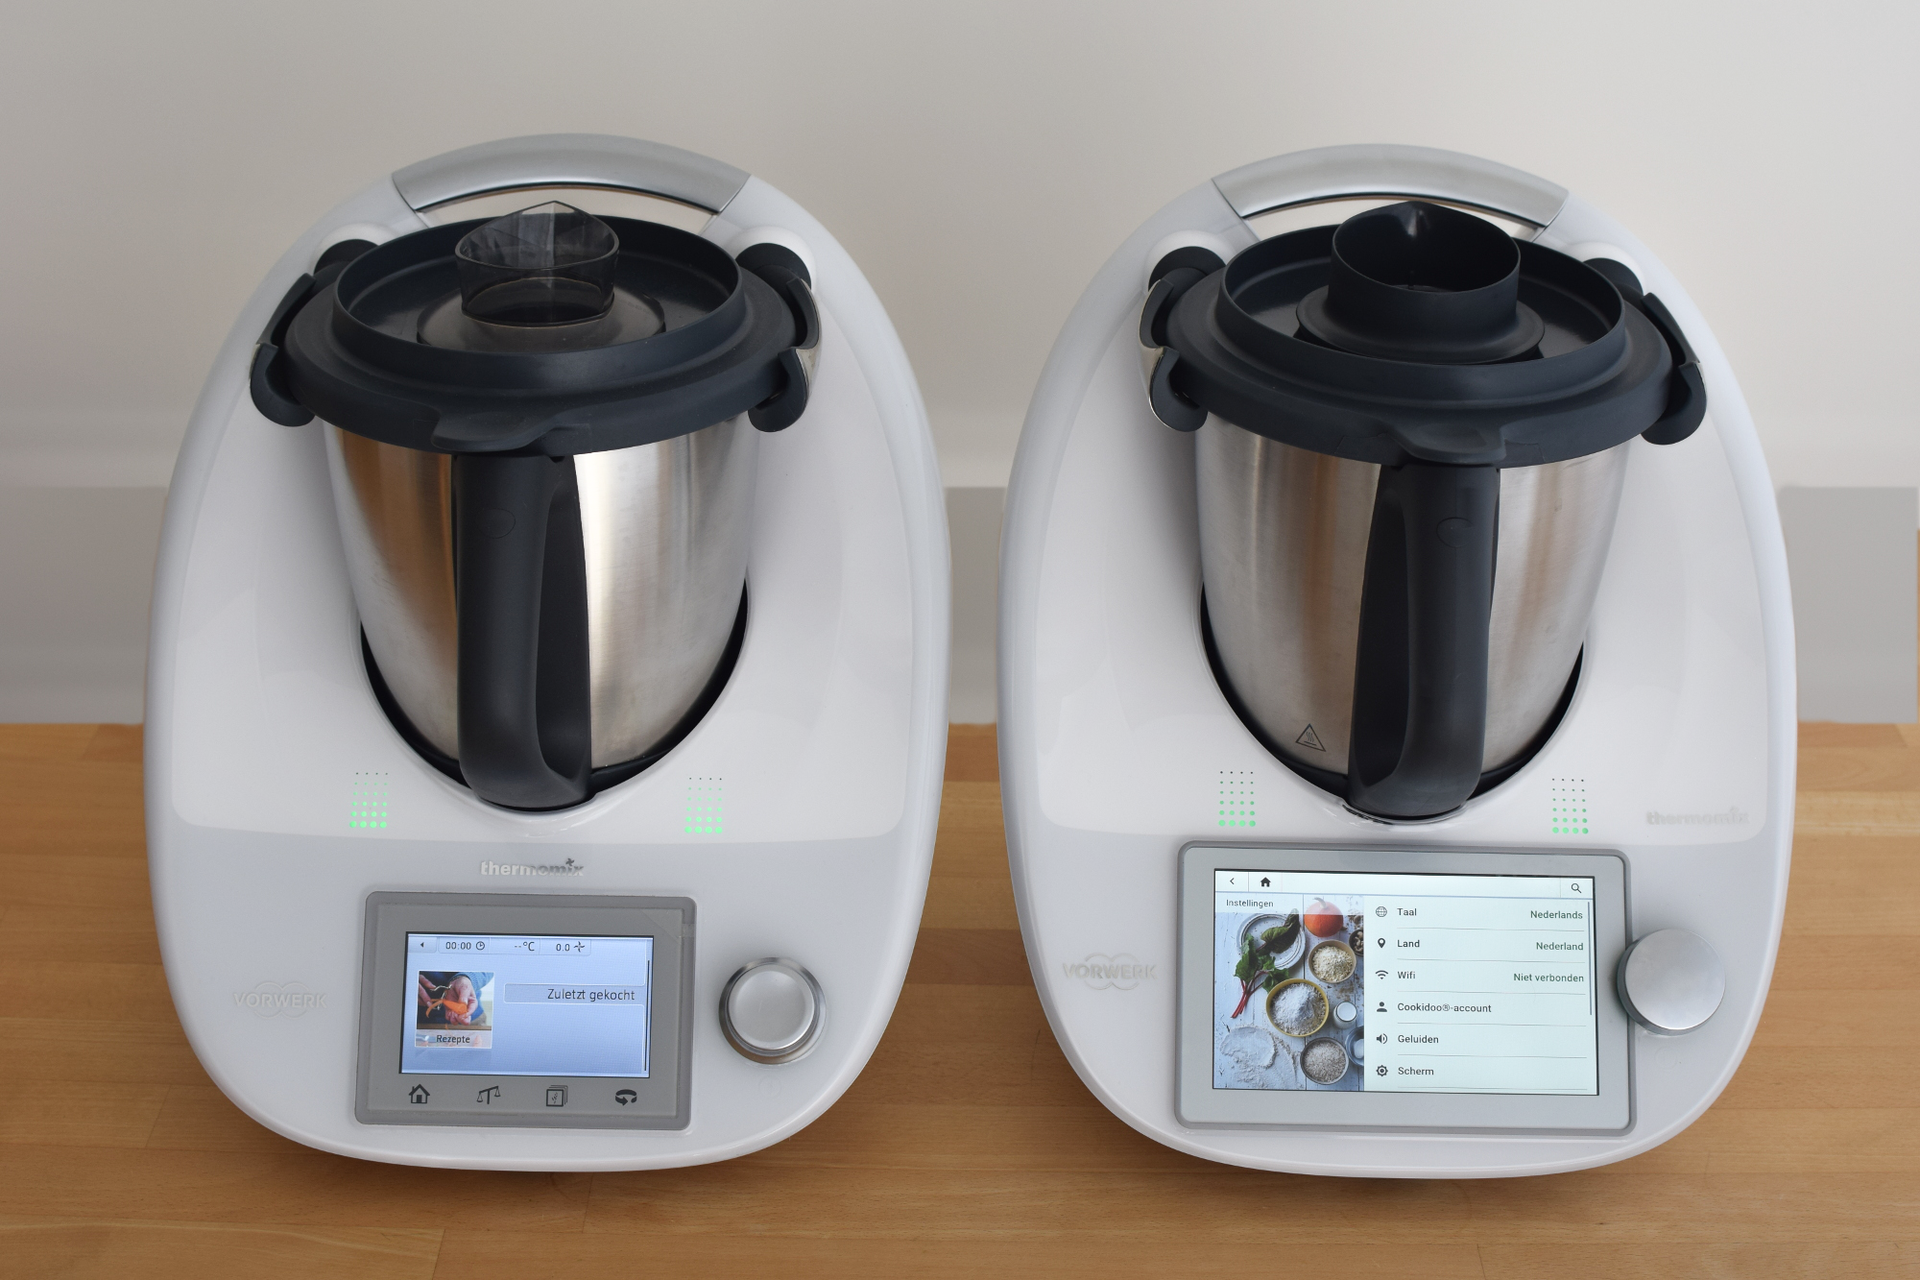 Comment Acheter Un Thermomix how to get a thermomix in the netherlands - thermomix tm6